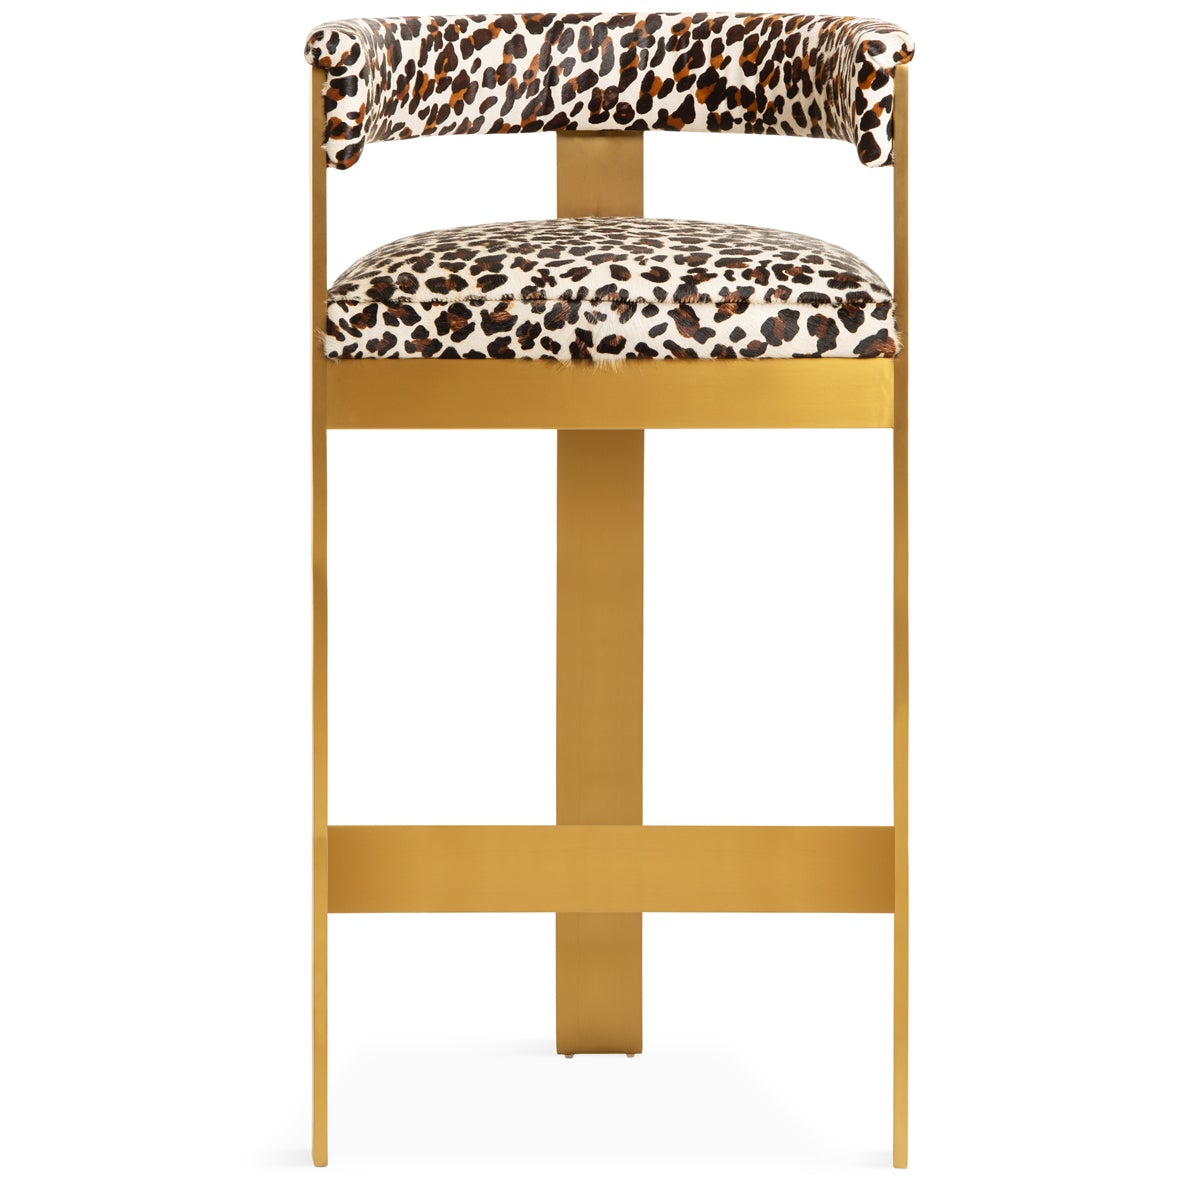 Marseille Bar and Counter Stool in Leopard Print Cowhide - ModShop1.com